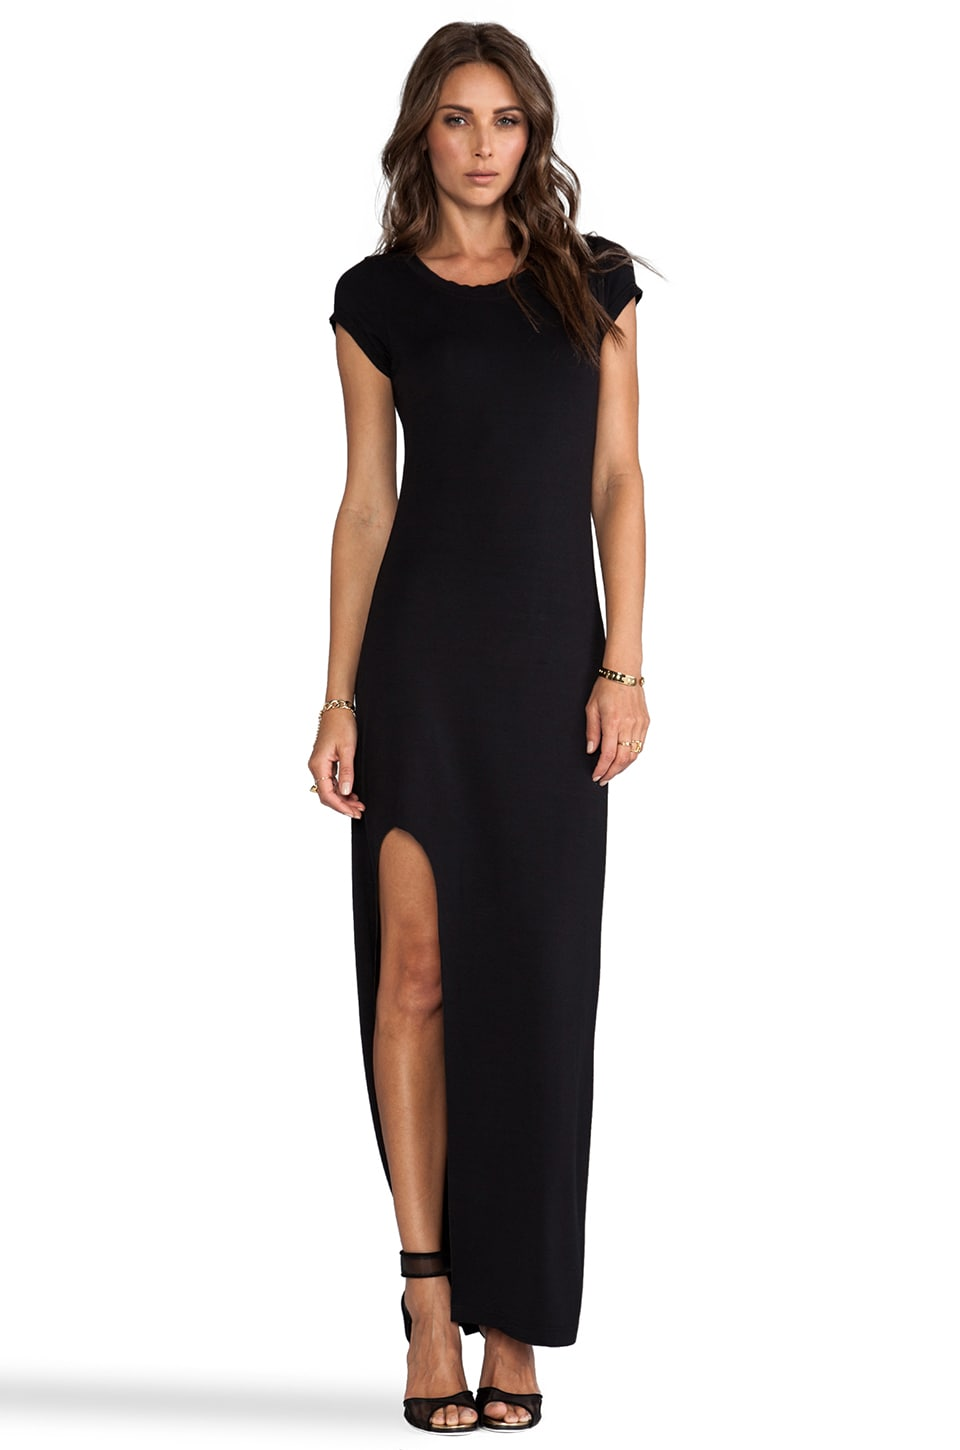 Bardot Bondi Maxi Dress in Black